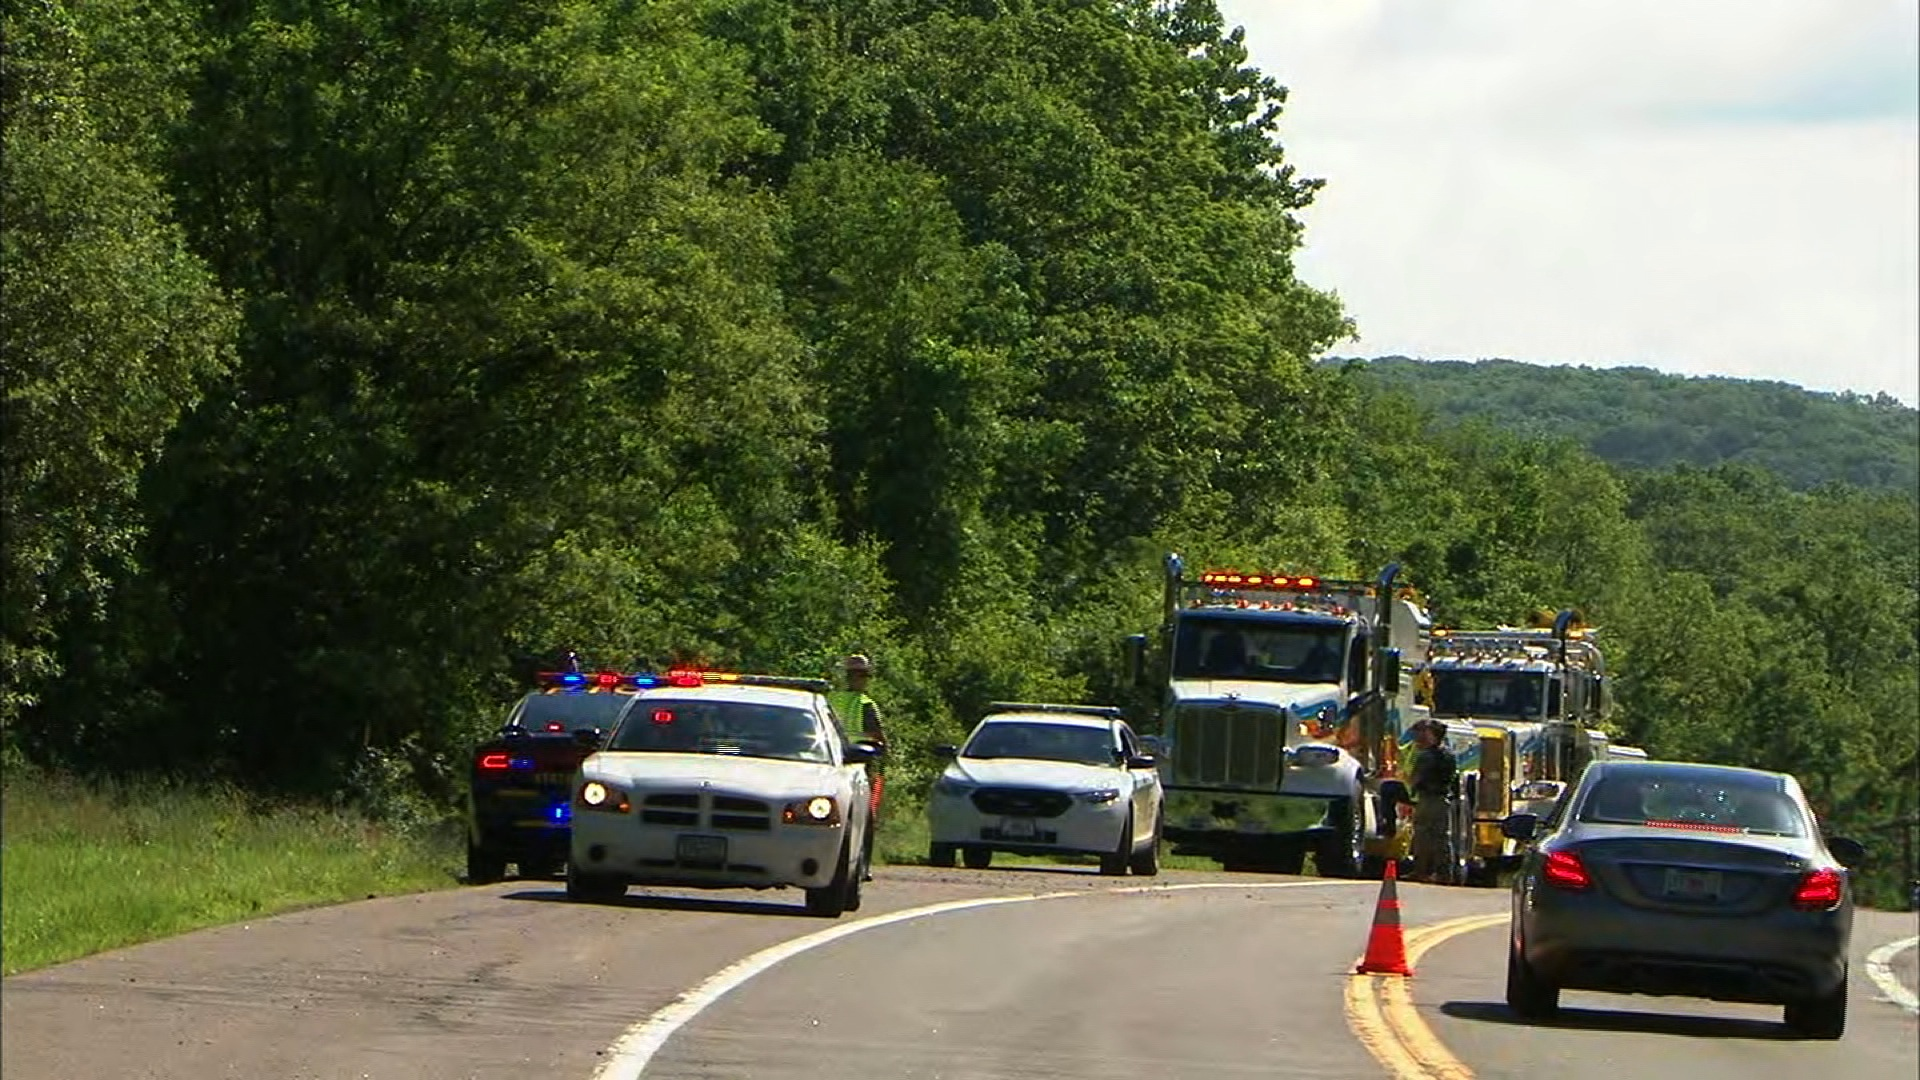 Fatal accident near West Point training site - CNN Video